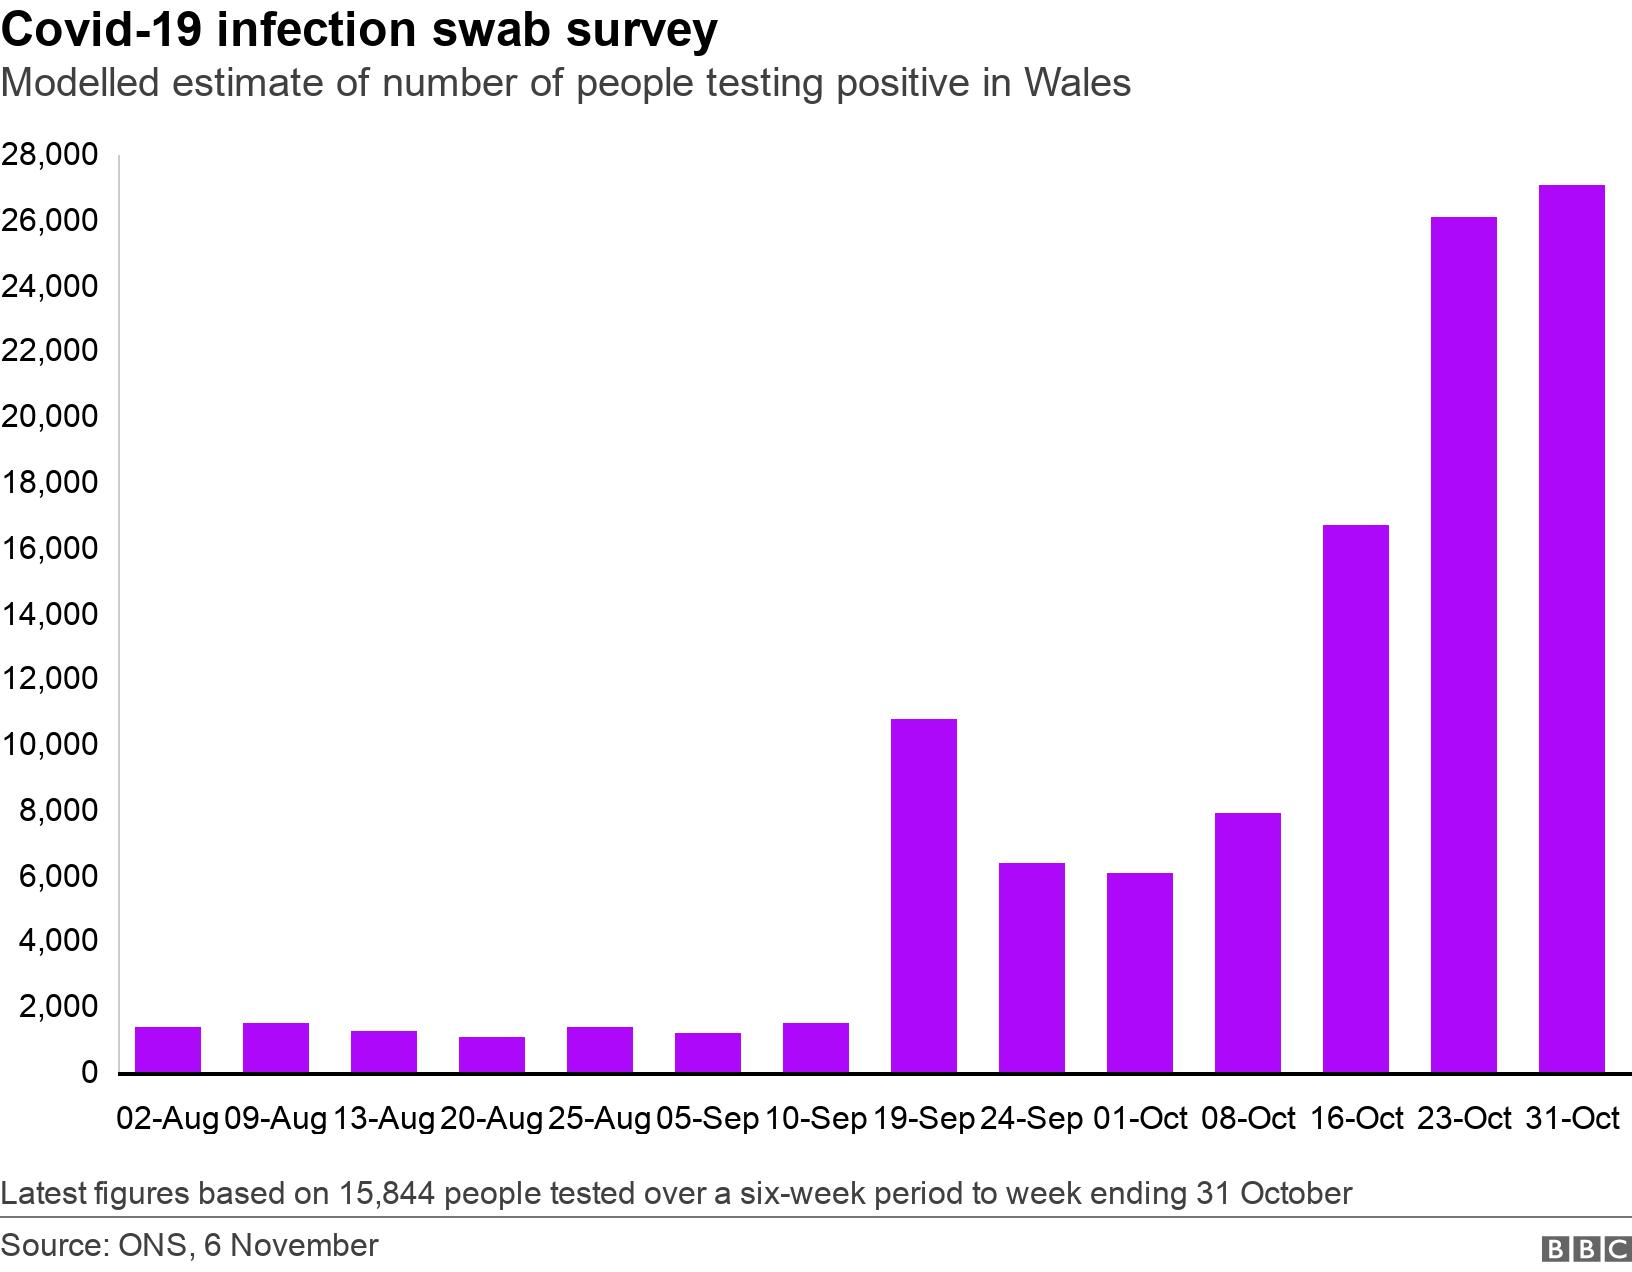 Covid-19 infection swab survey. Modelled estimate of number of people testing positive in Wales.  Latest figures based on 15,844 people tested over a six-week period to week ending 31 October.